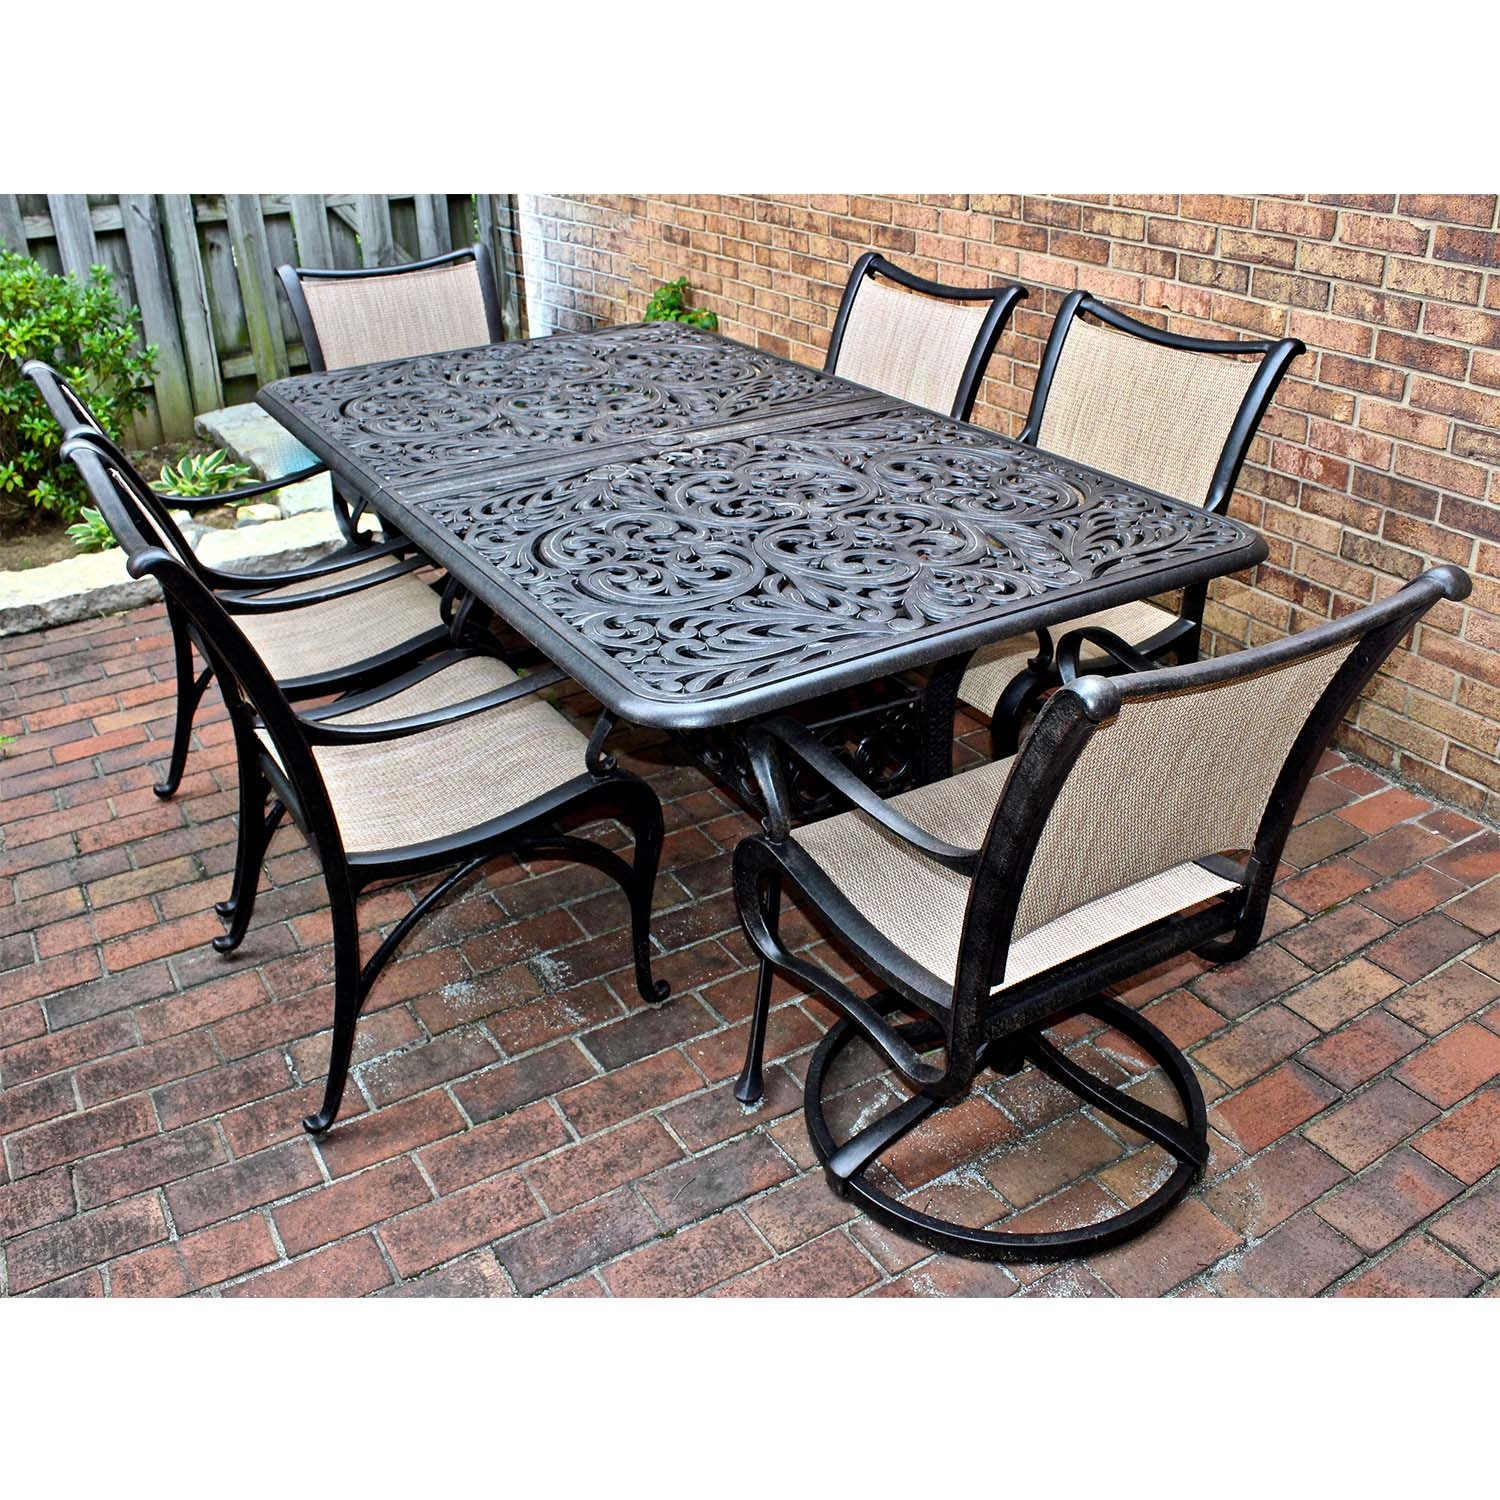 Outdoor Cast Aluminum Patio Leaf Dining Table and Chairs